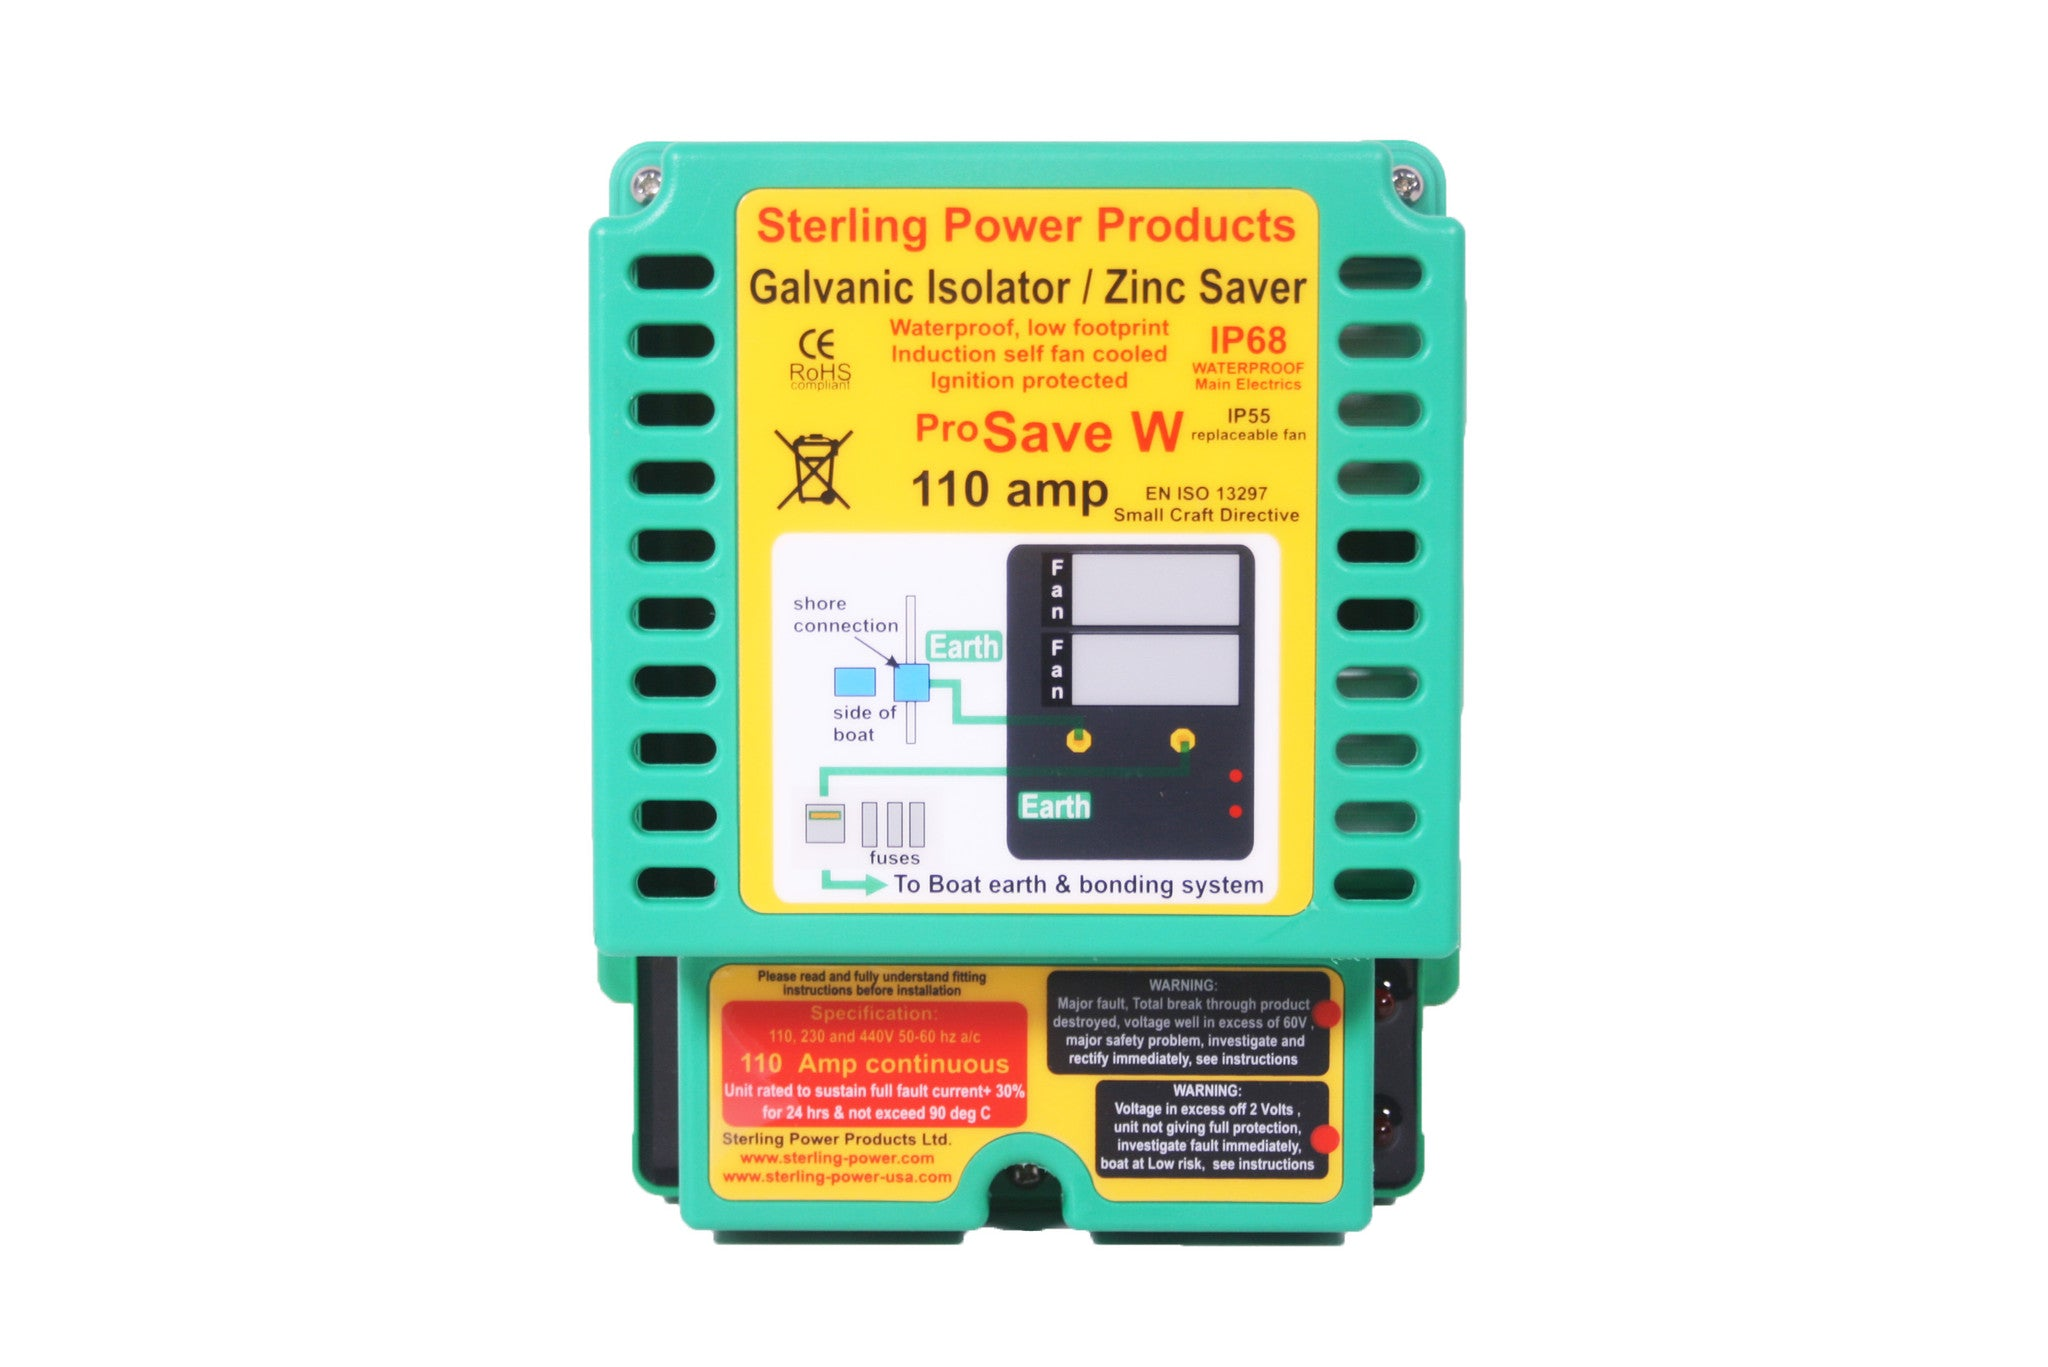 Galvanic Isolator / Zinc Saver (Waterproof)